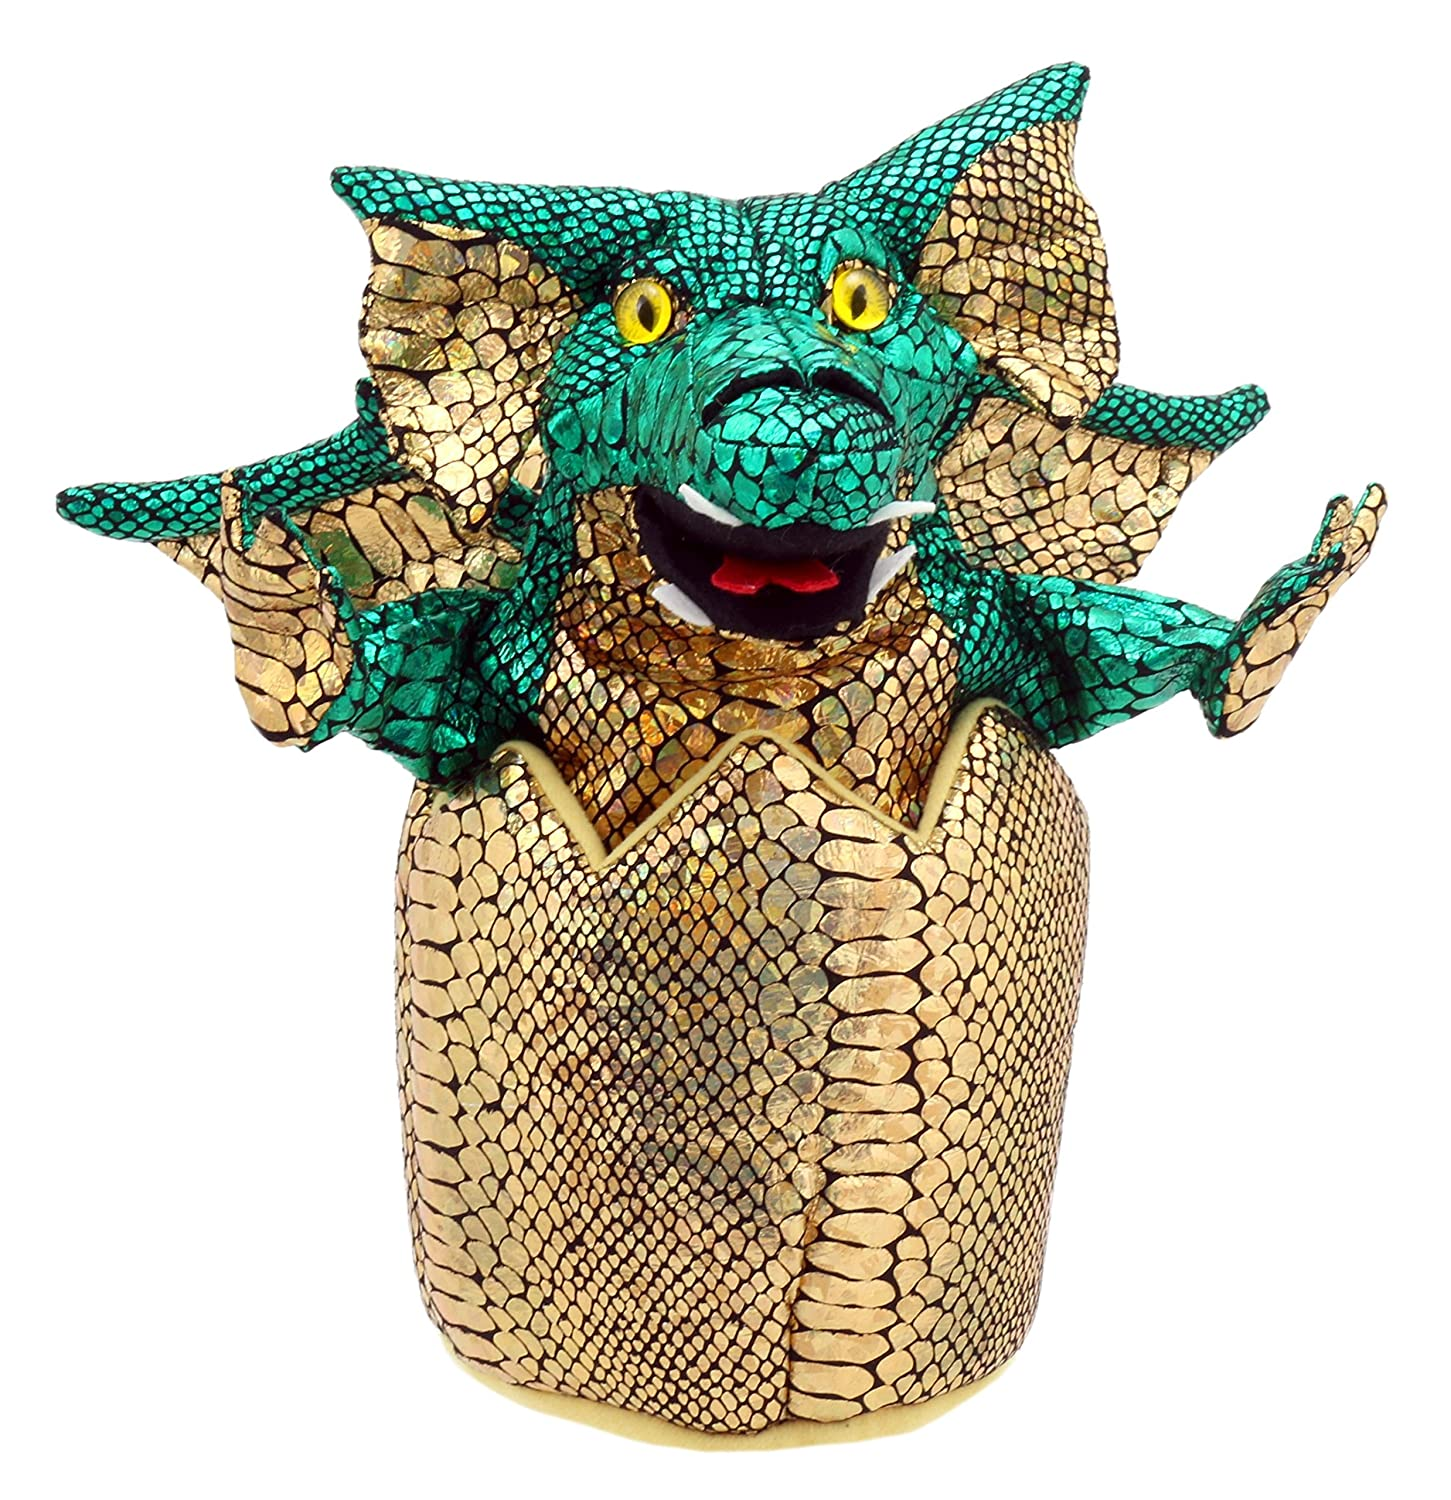 The Puppet Company Green Hatching Dragon Hand Puppet PC004302